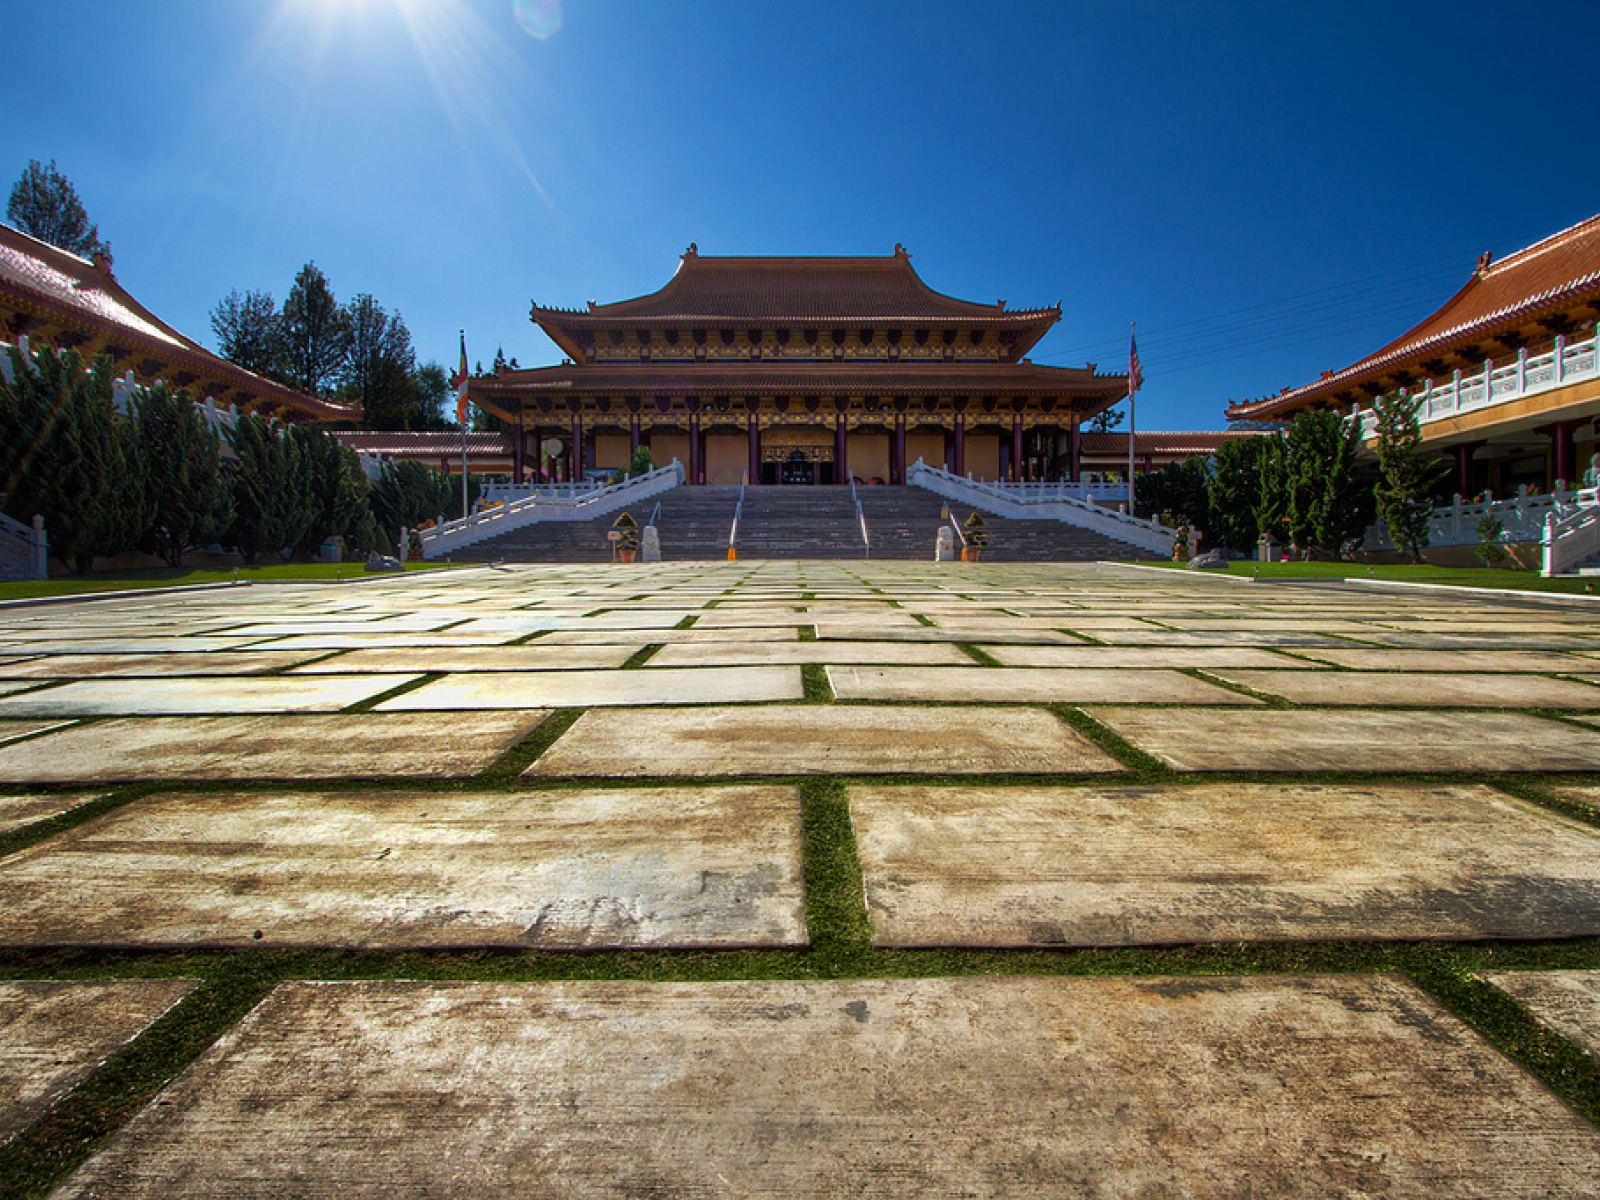 Main image for article titled 6月28日:HSI LAI TEMPLE